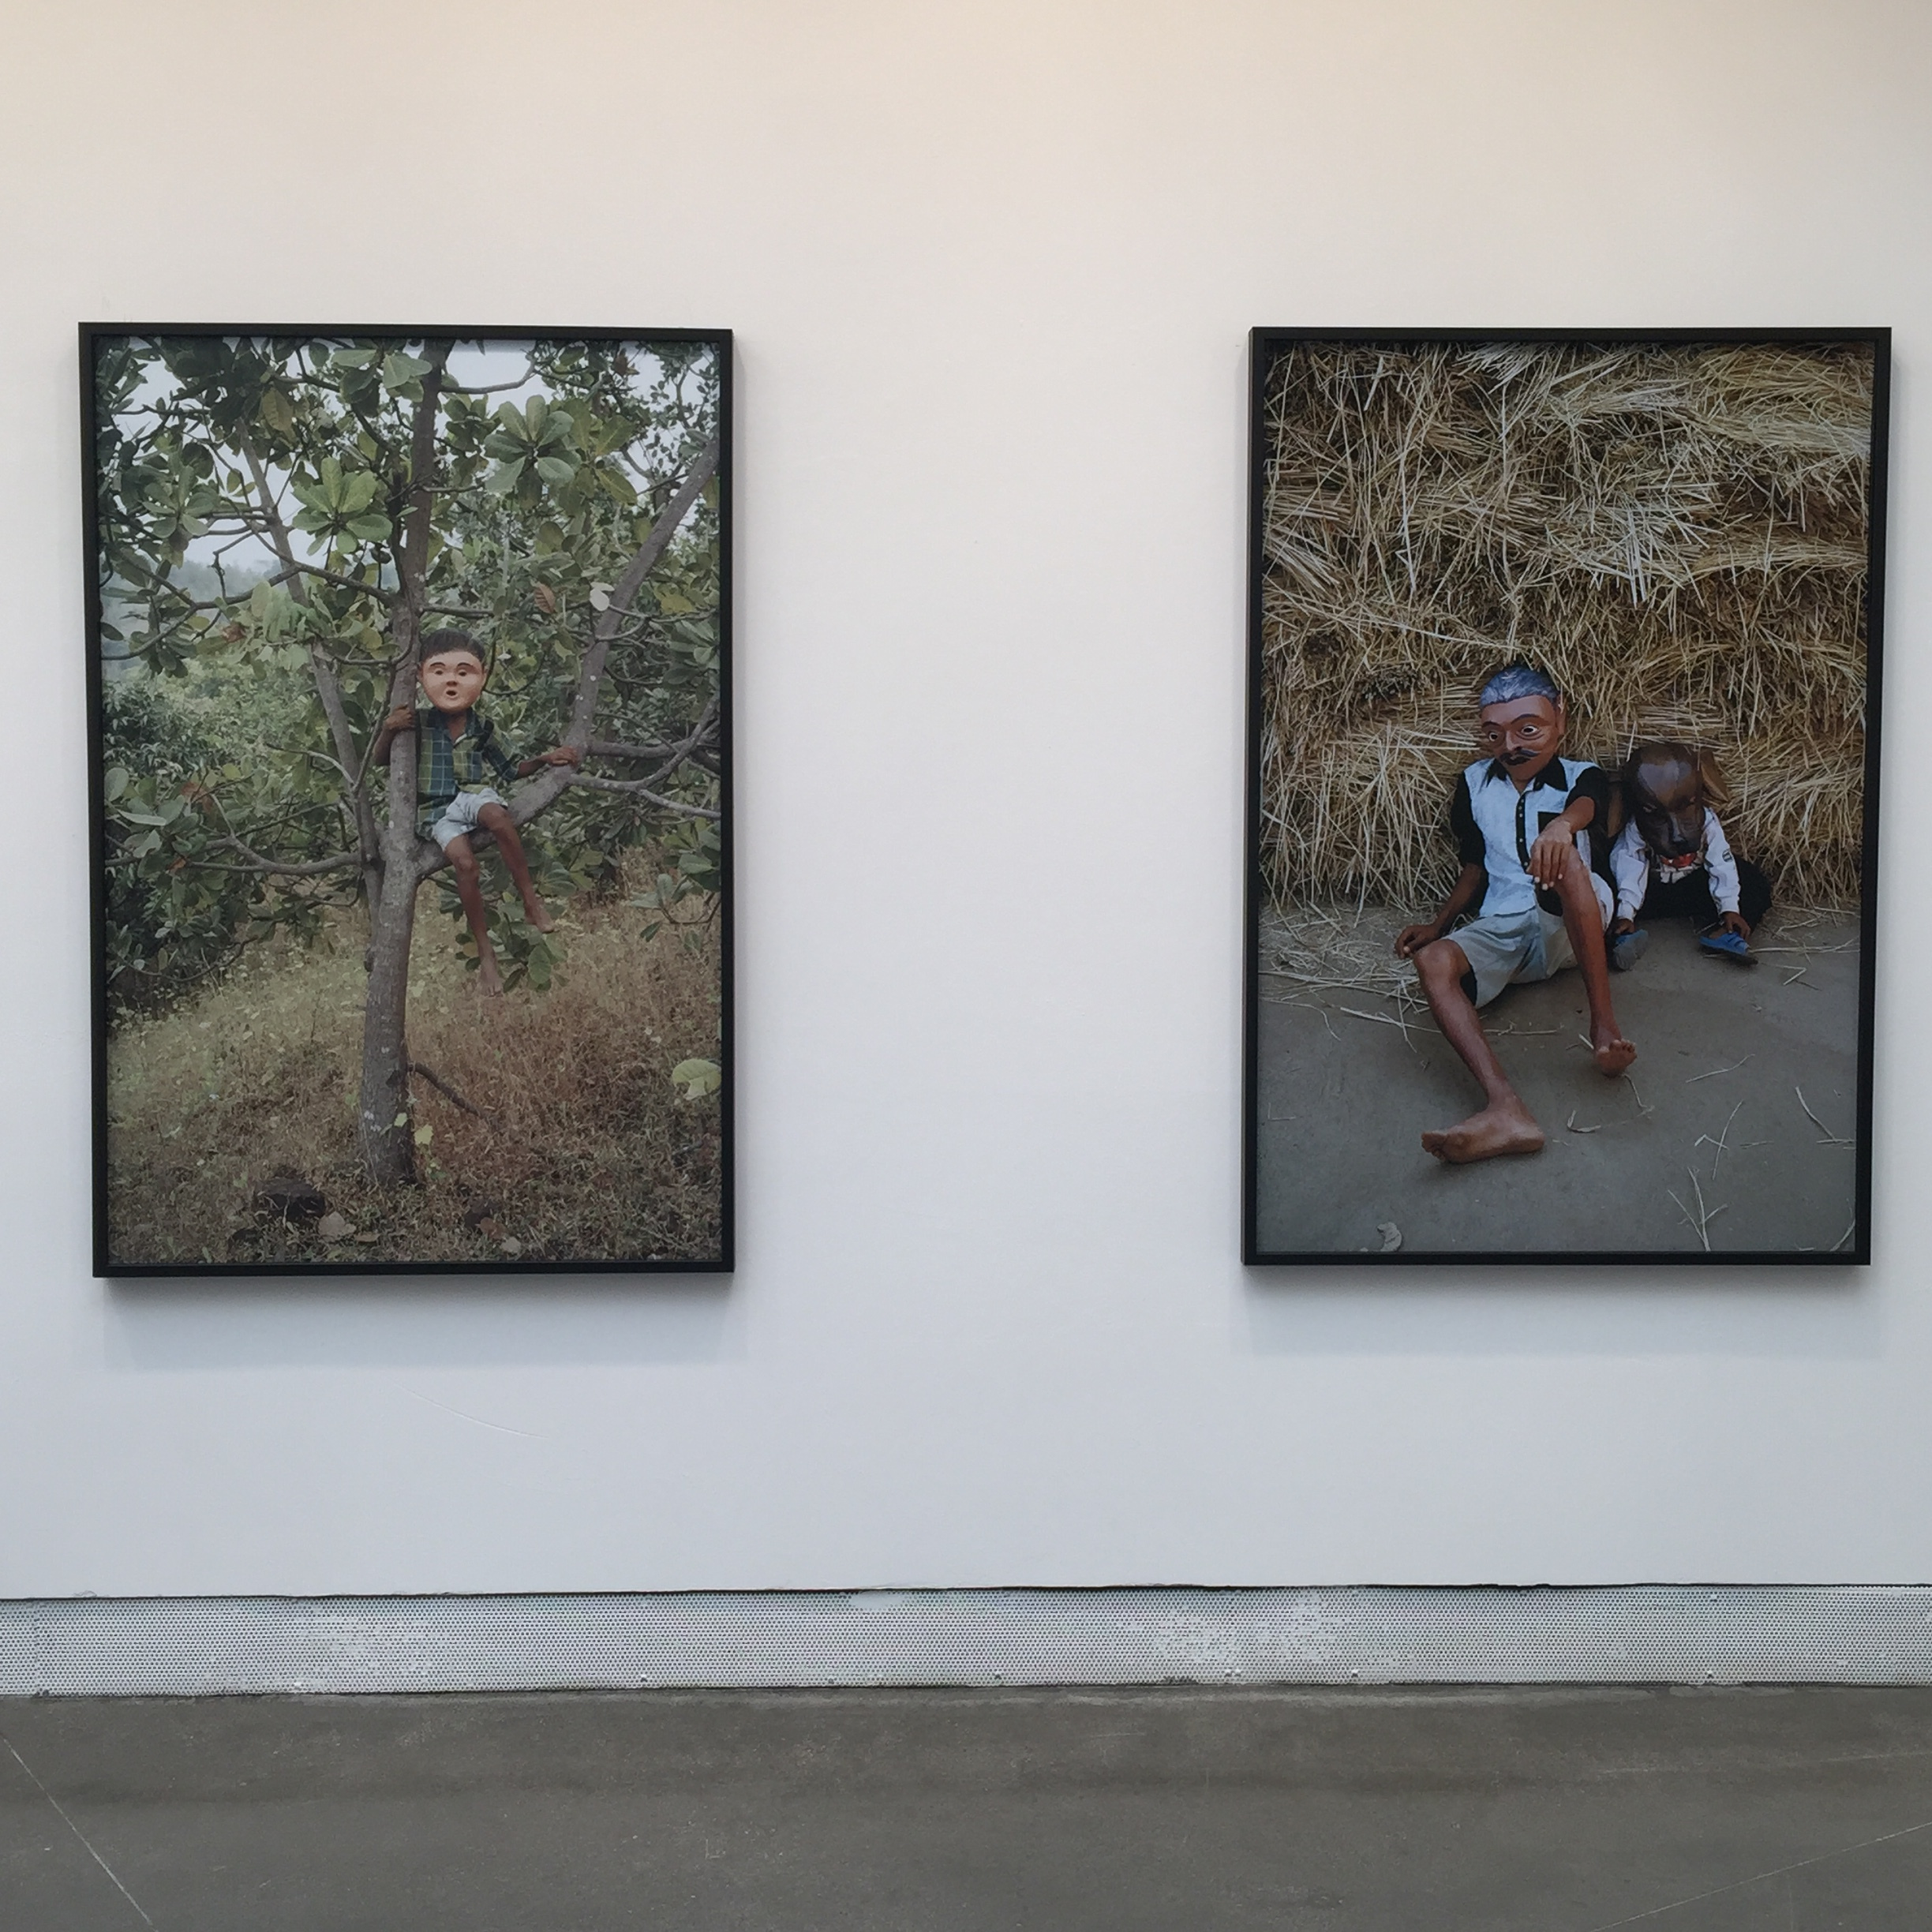 Gauri Gill photographs at the Ralph Rugoff exhibition at the Venice Biennale